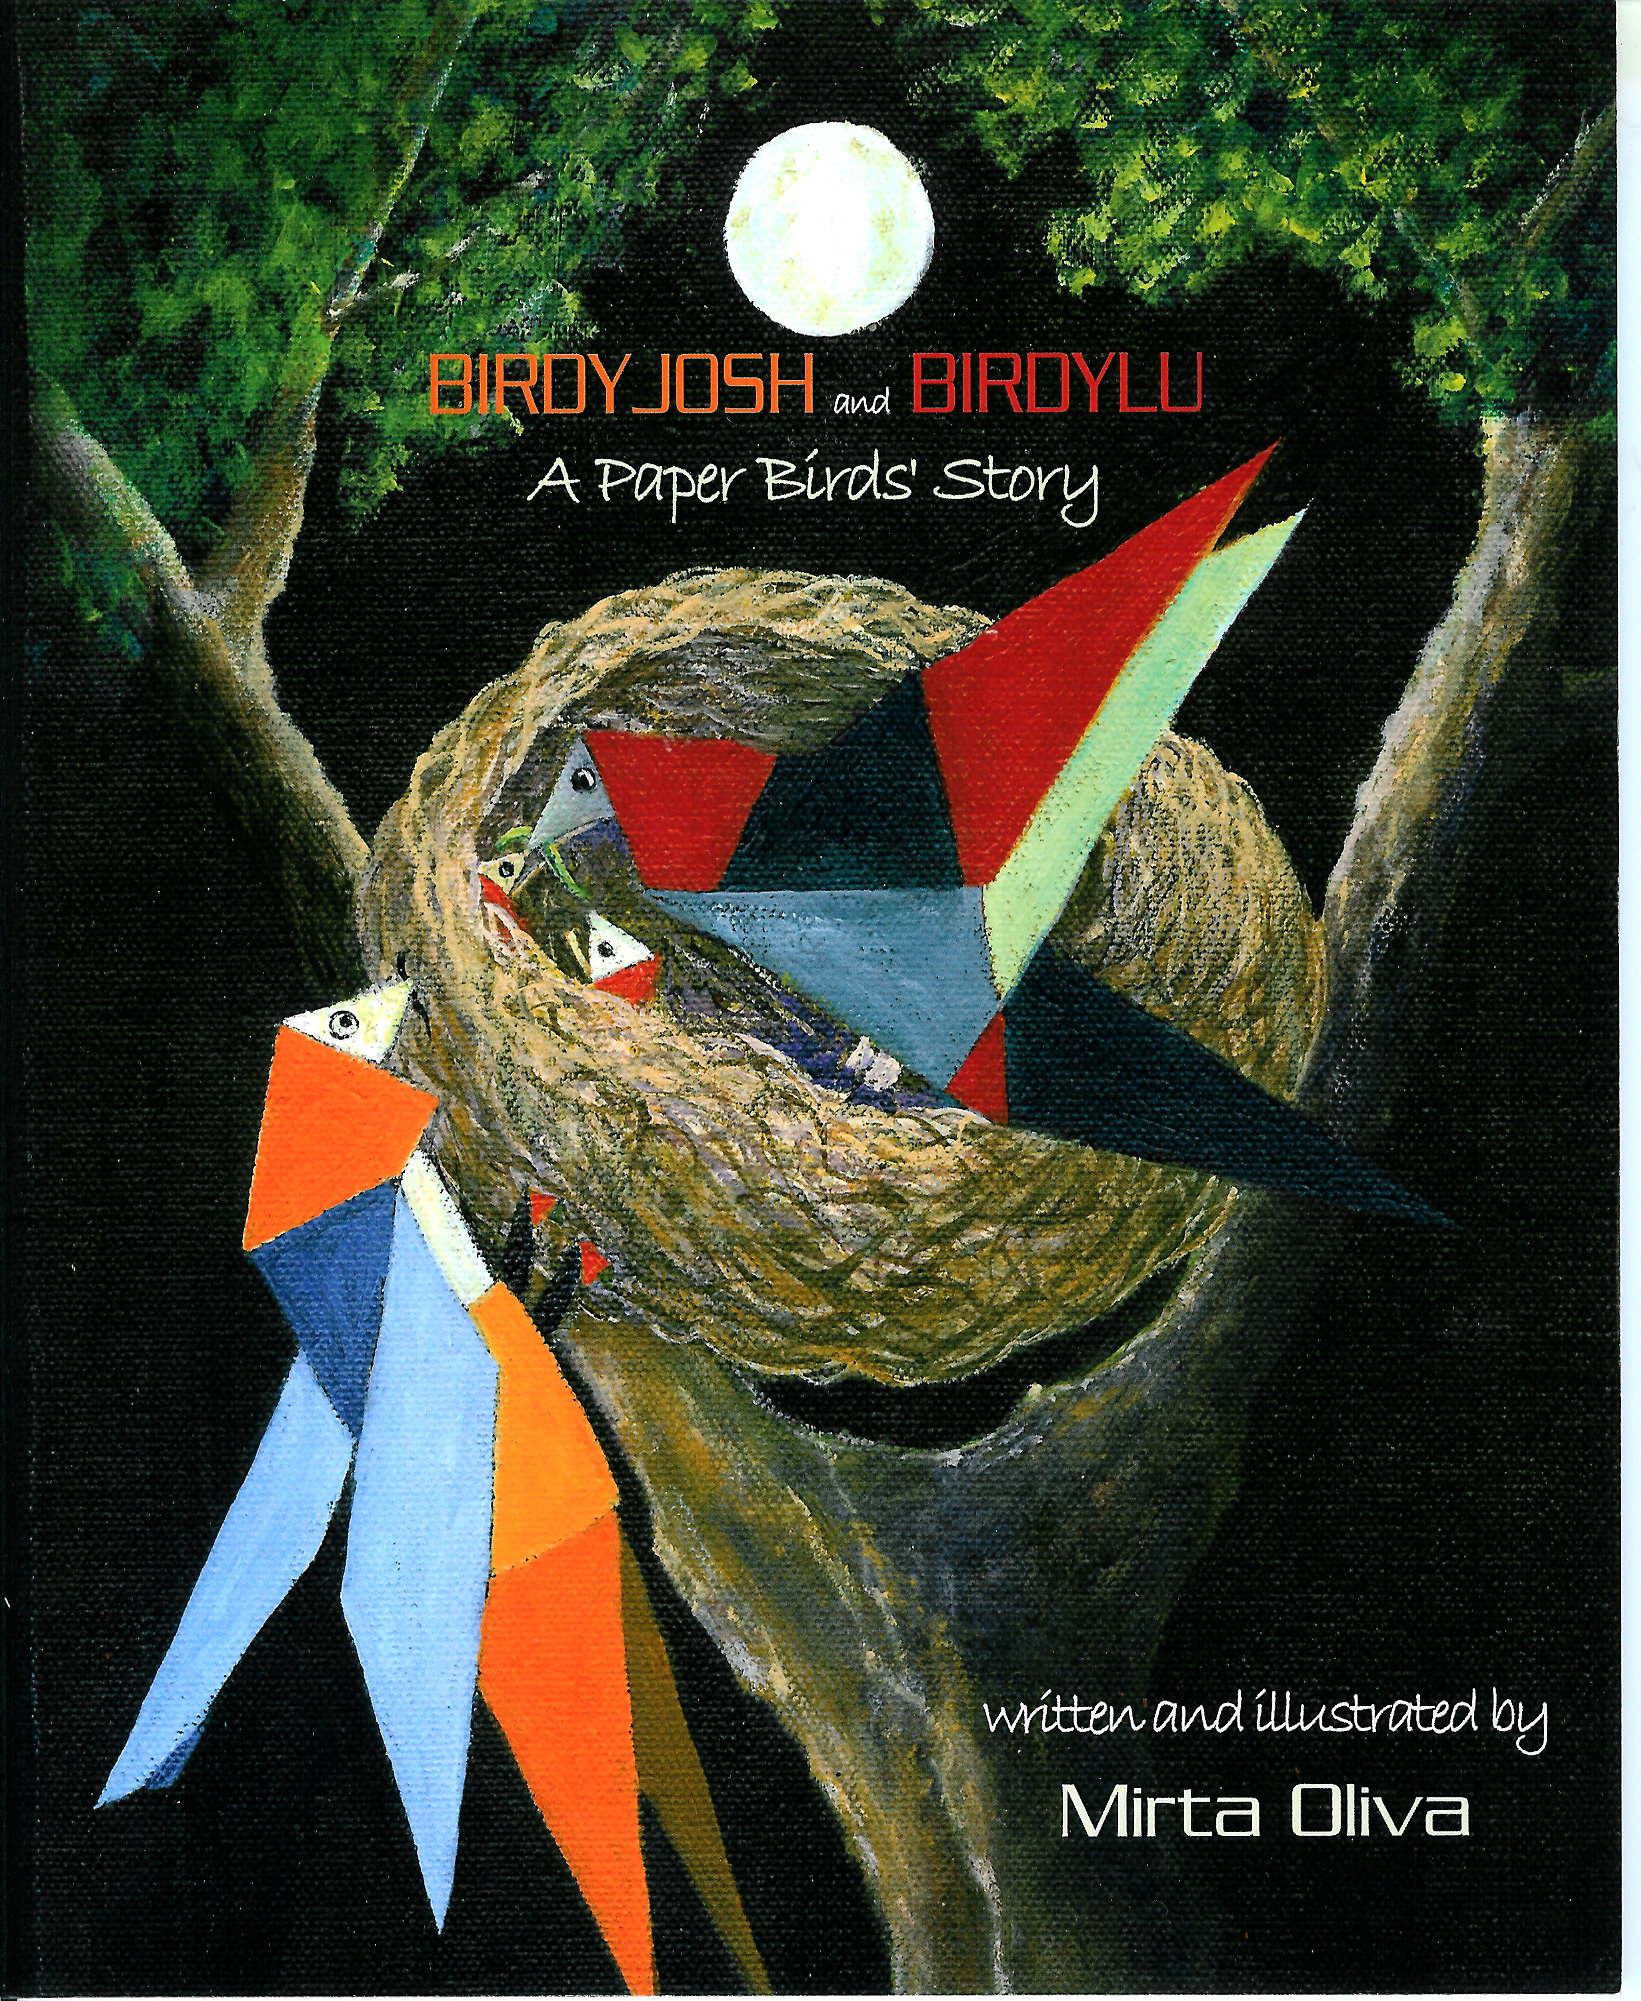 BIRDYJOSH and BIRDYLU, a Paper Birds' Story